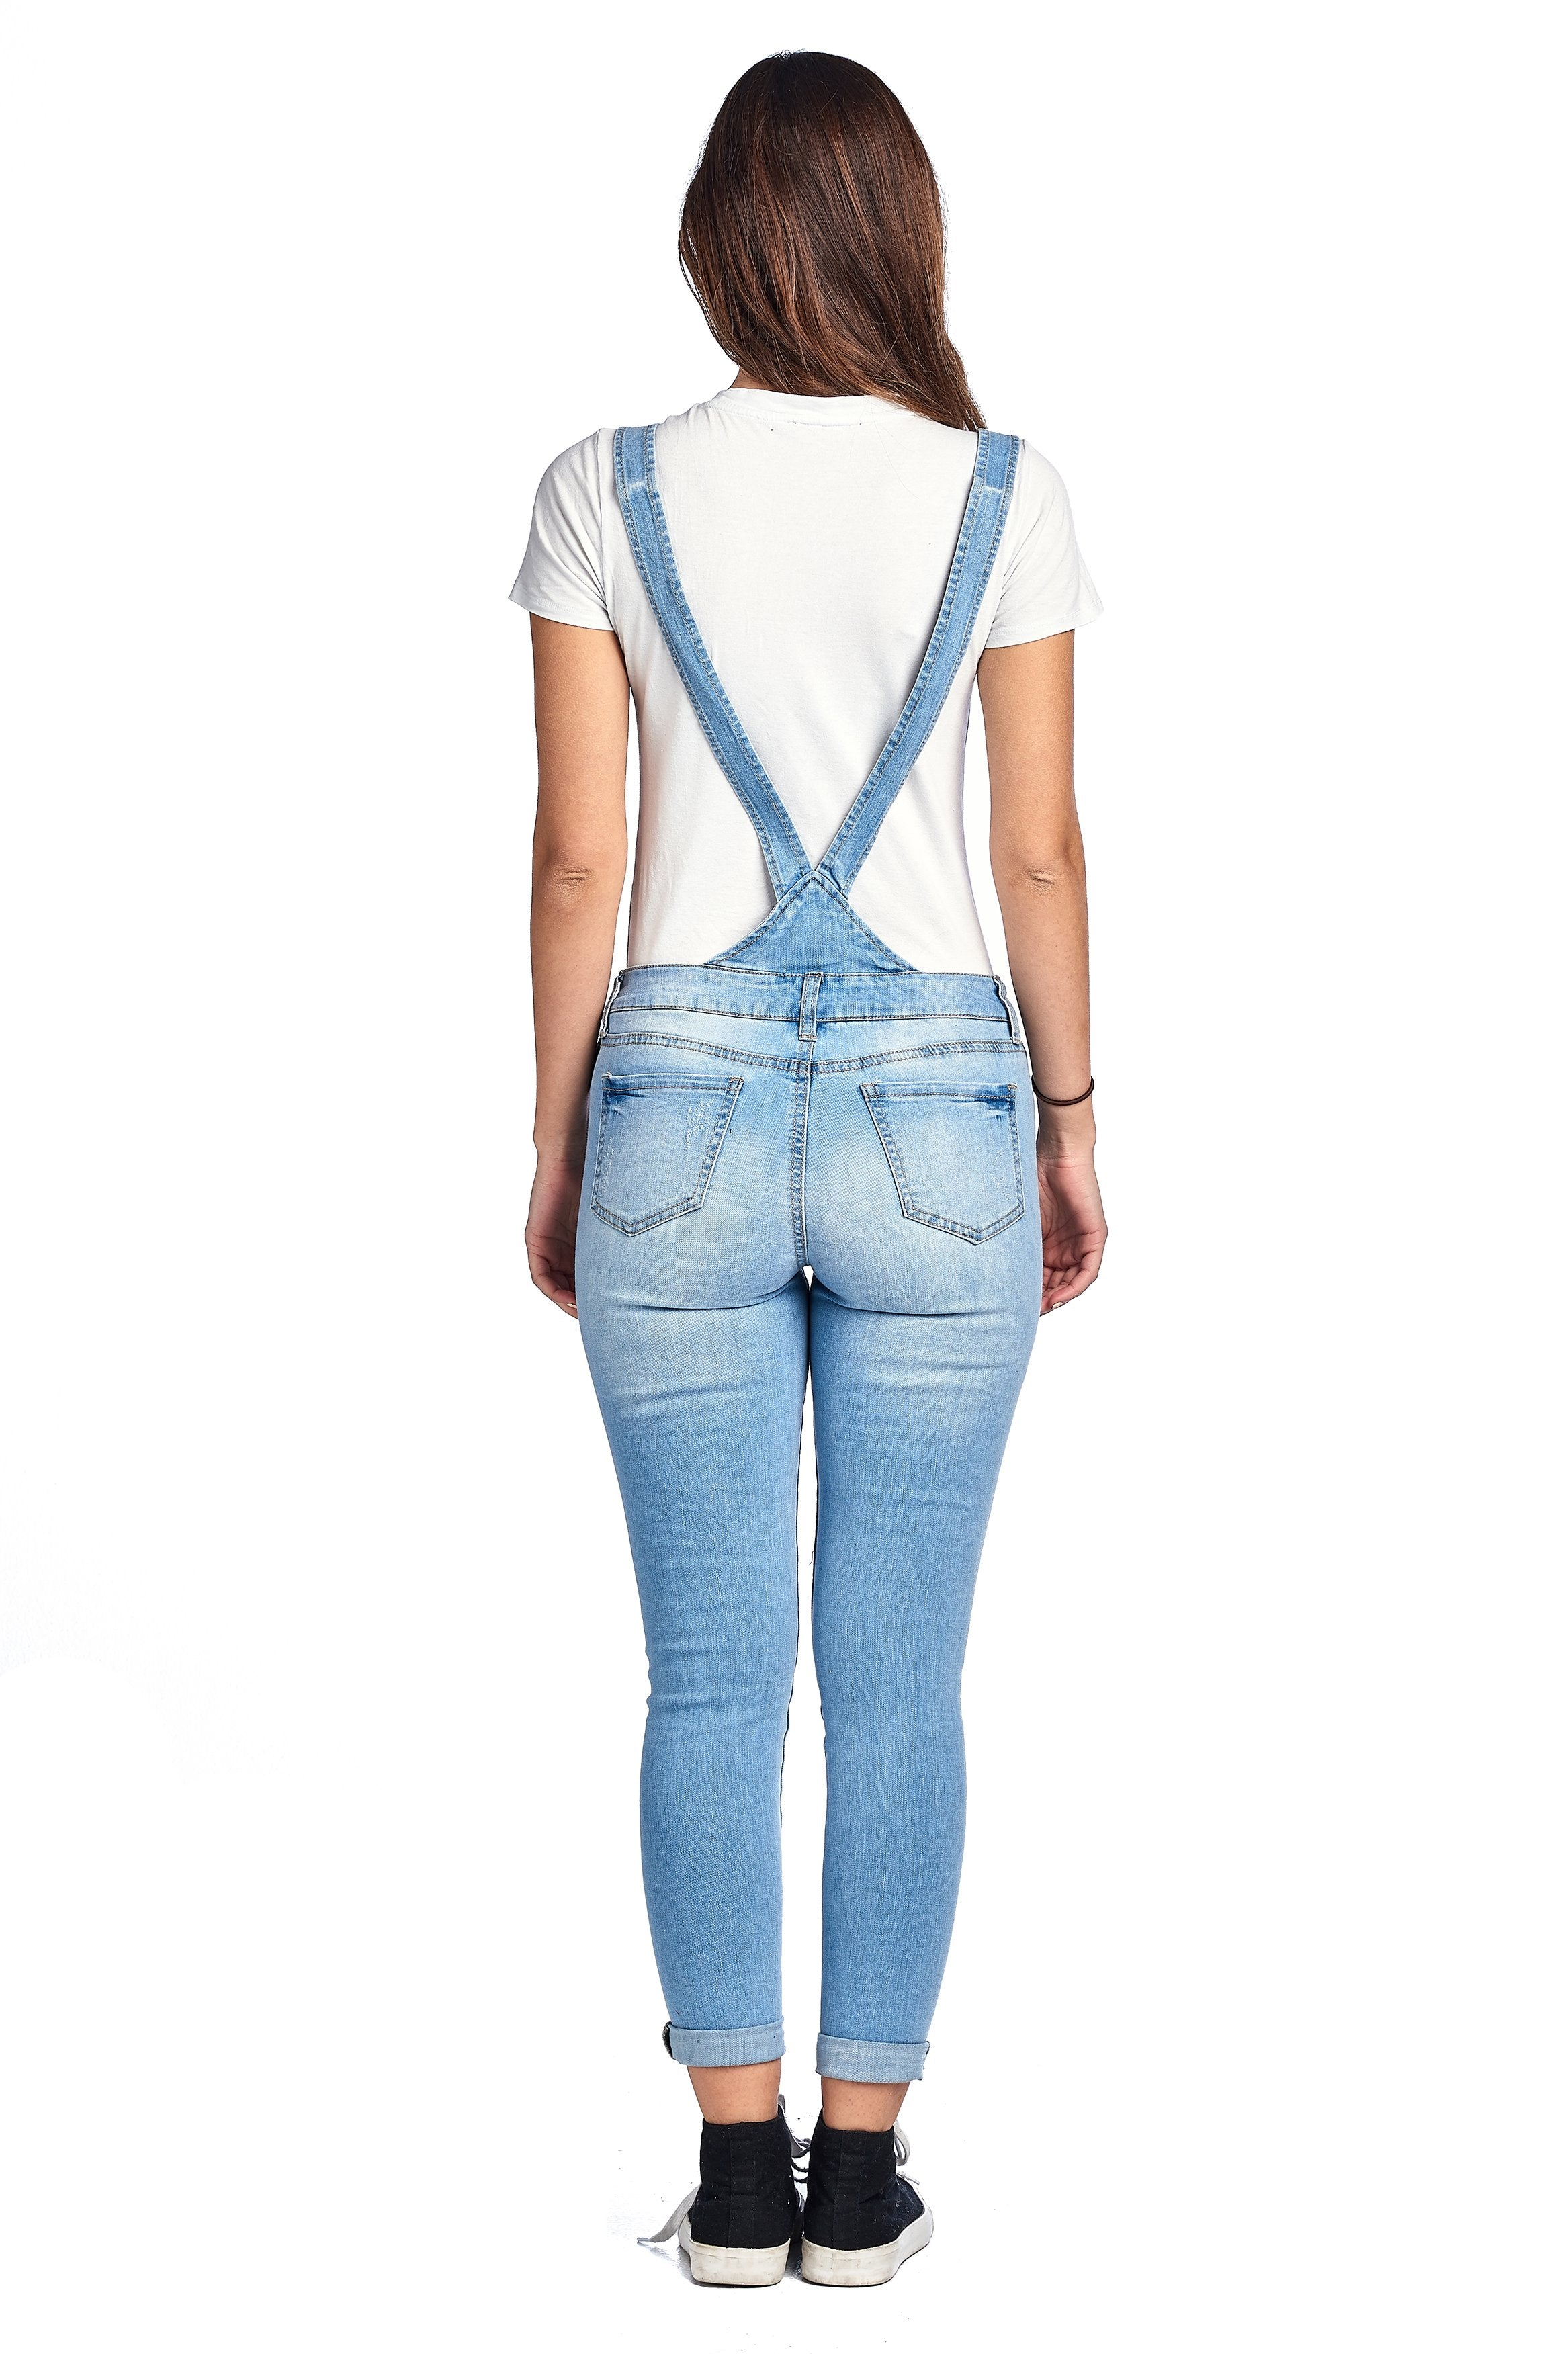 Denim Distressed Rolled Cuff Ankle Length Adjustable Straps Skinny Jean Overalls